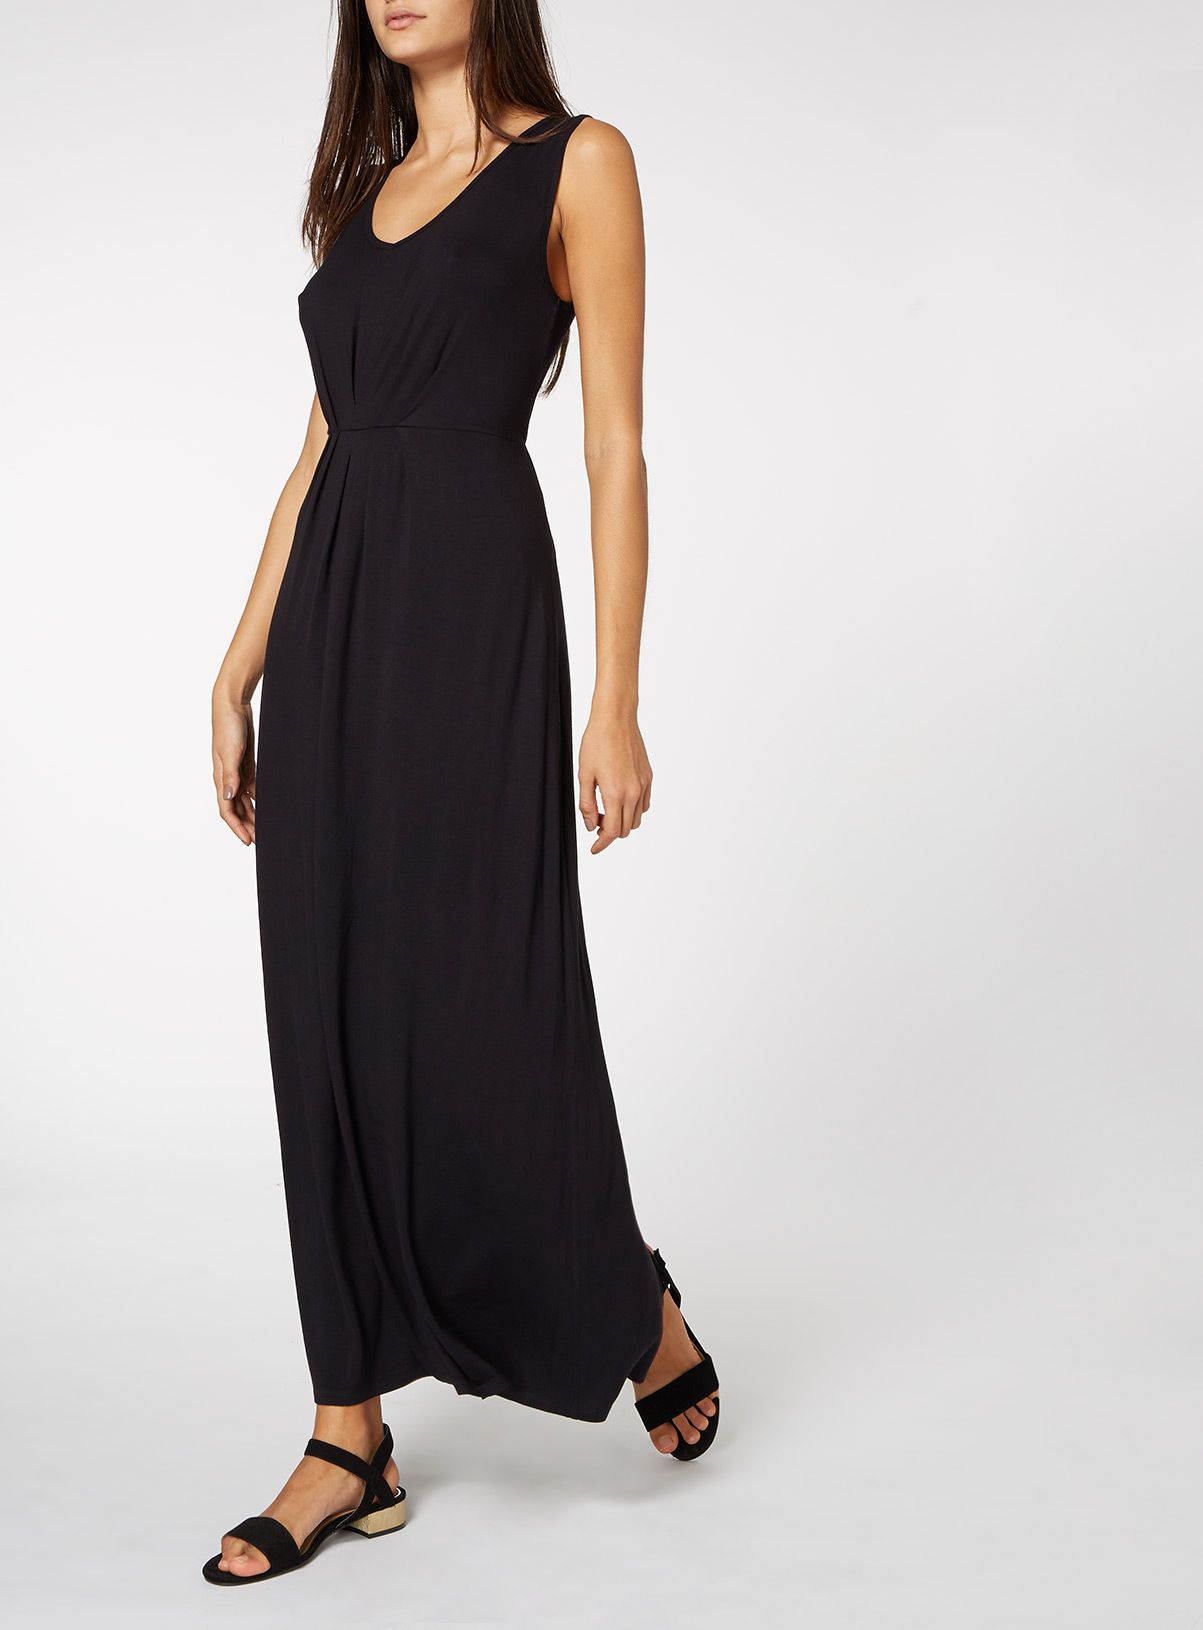 0ad8a79763 This black maxi dress is the perfect versatile piece to take on your summer  holidays.